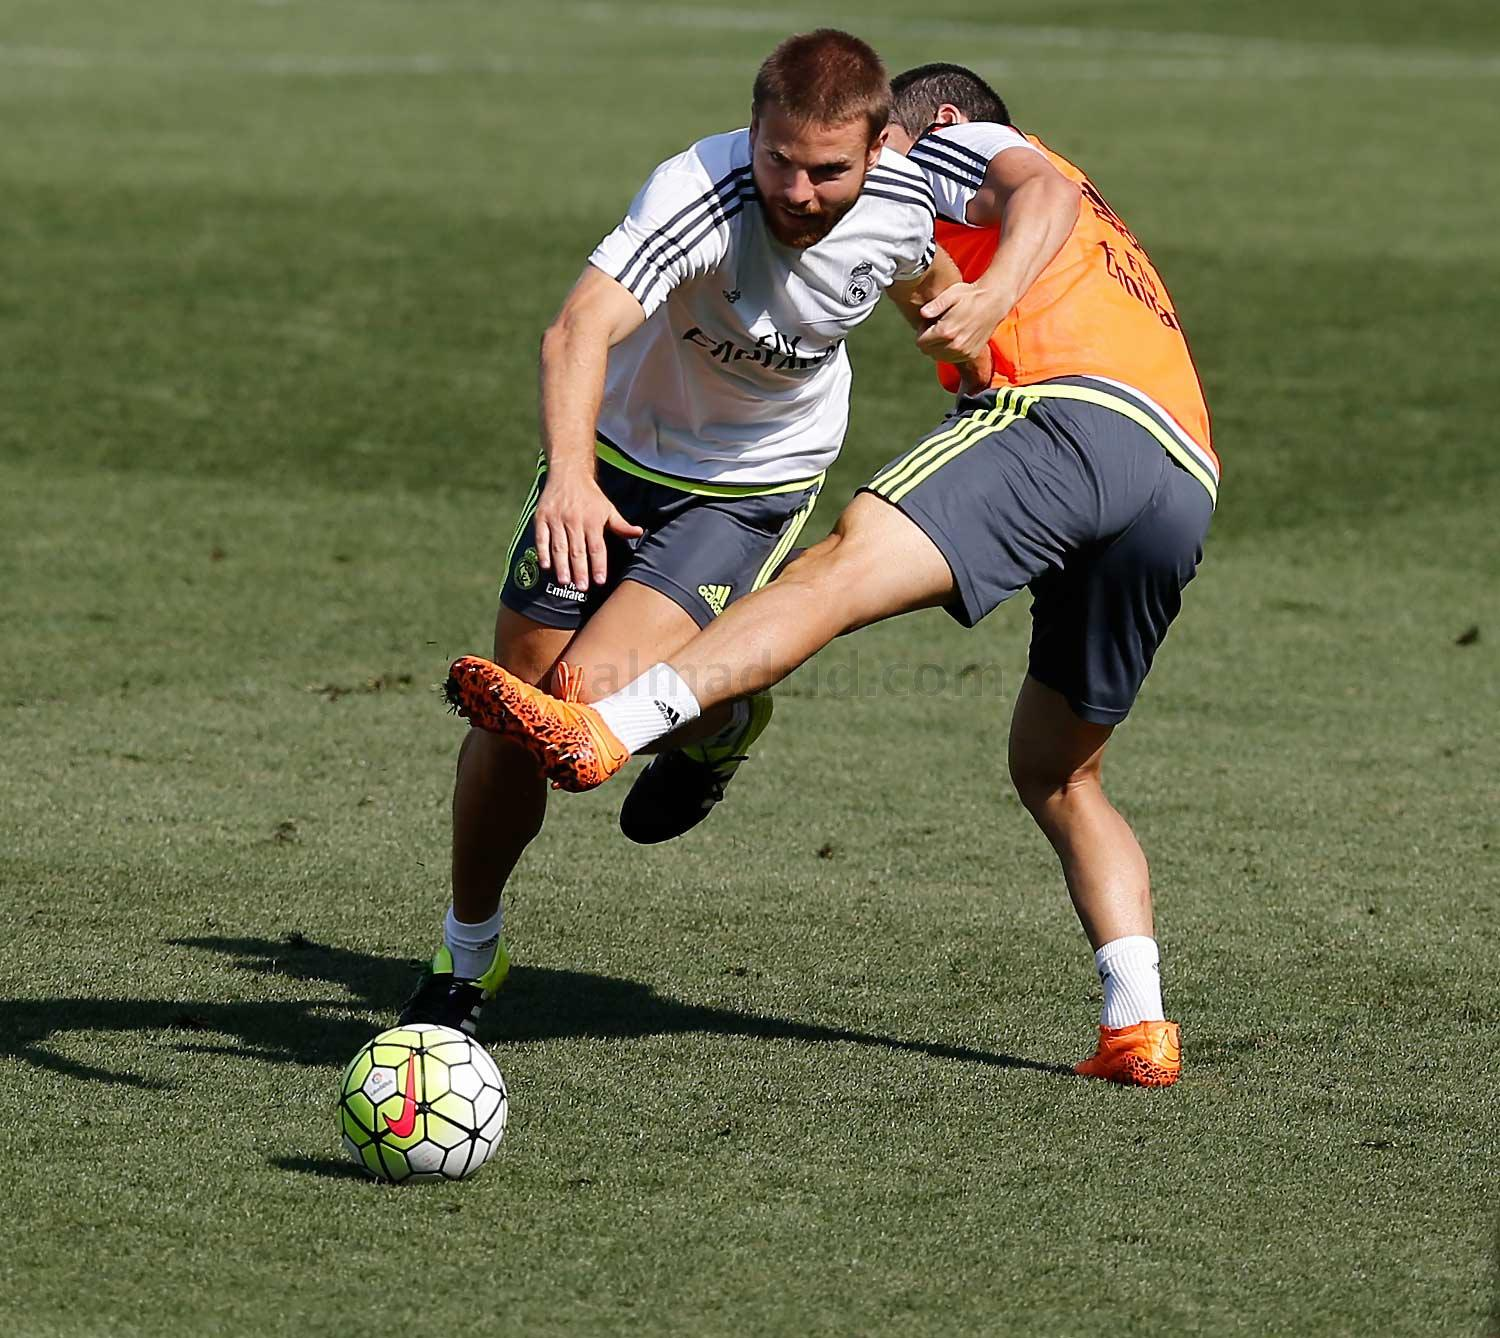 Real Madrid - Entrenamiento del Real Madrid - 21-08-2015